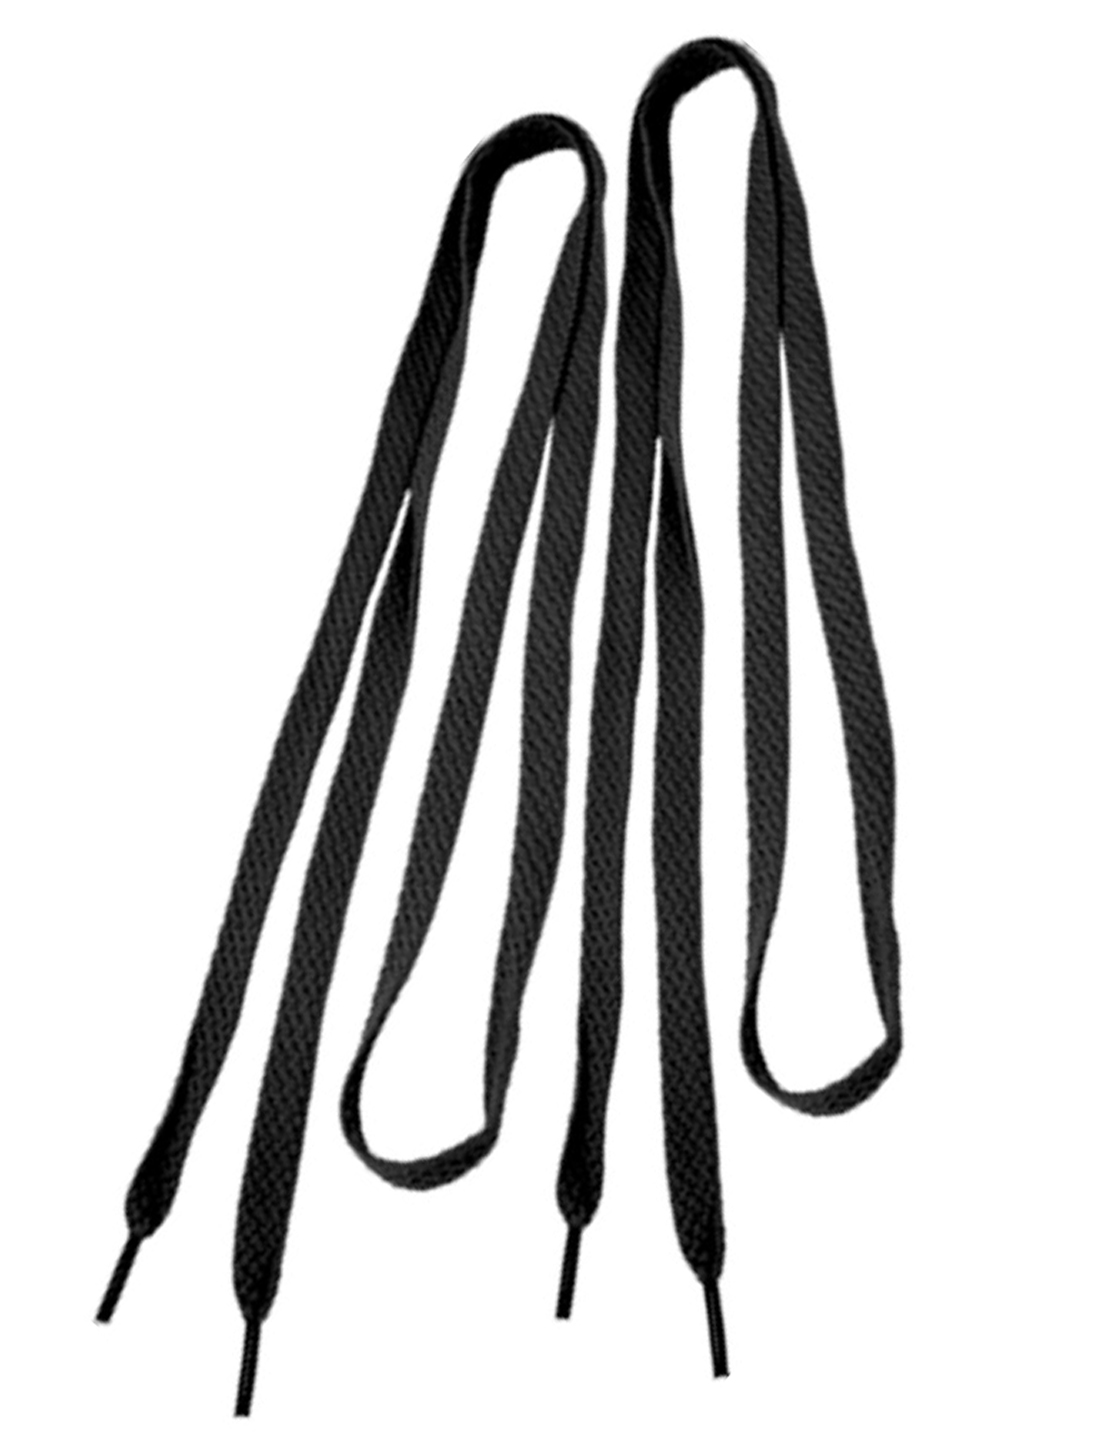 "46"" Long Black Flat Shoelaces Gym Shoes String 1 Pair"